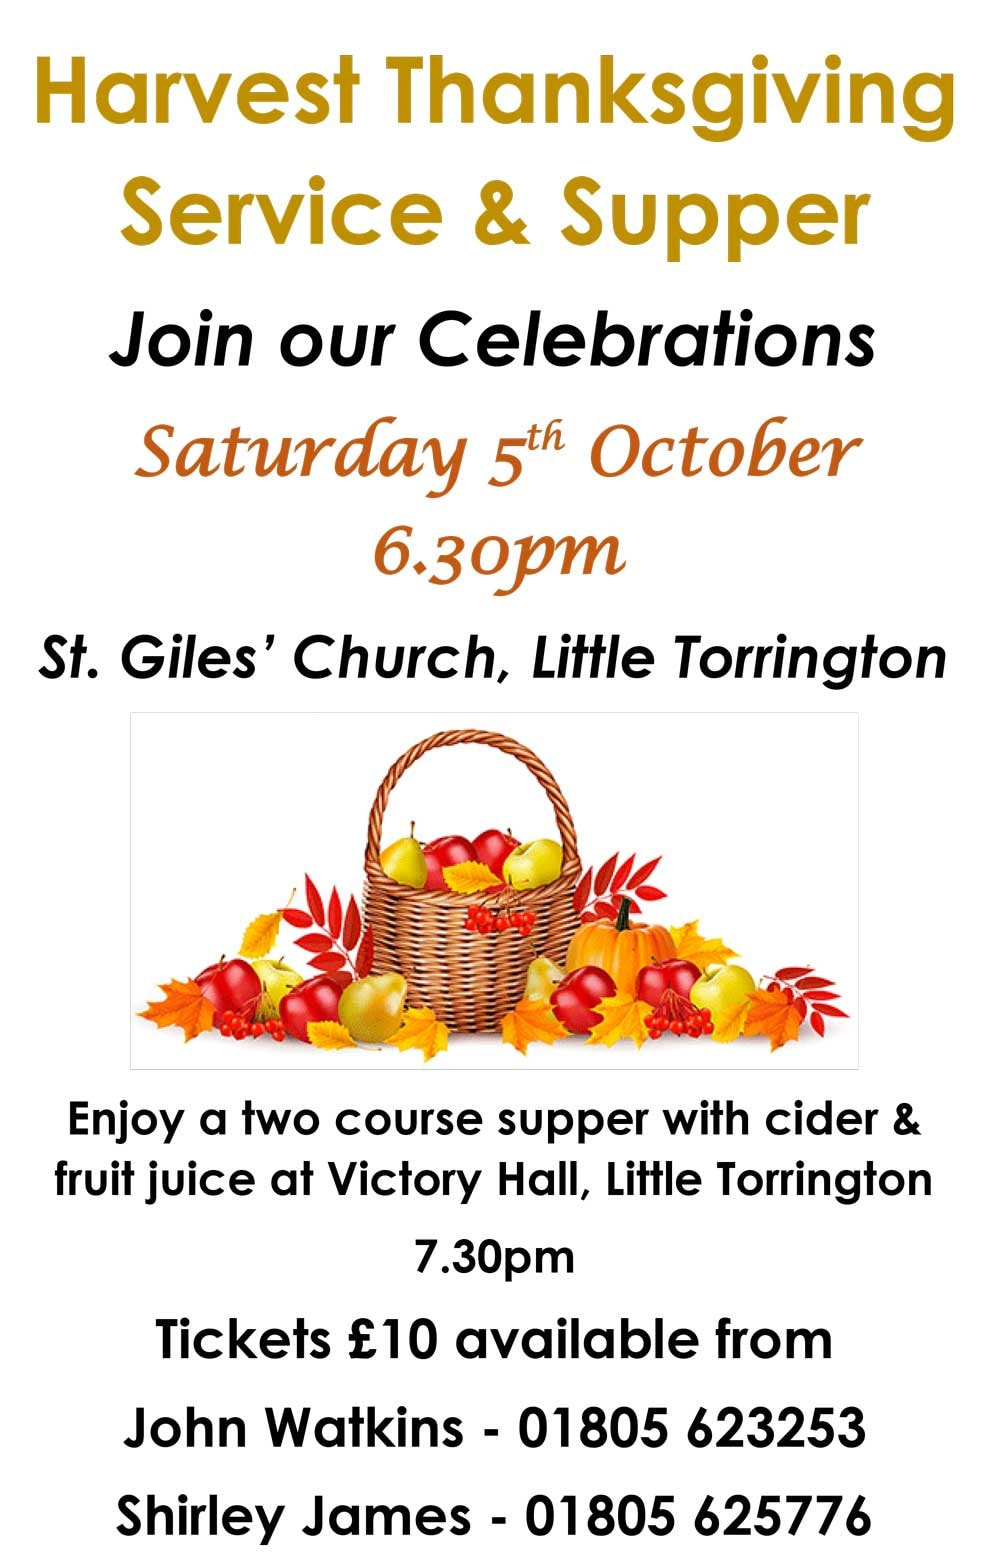 Little Torrington Harvest Thanksgiving poster